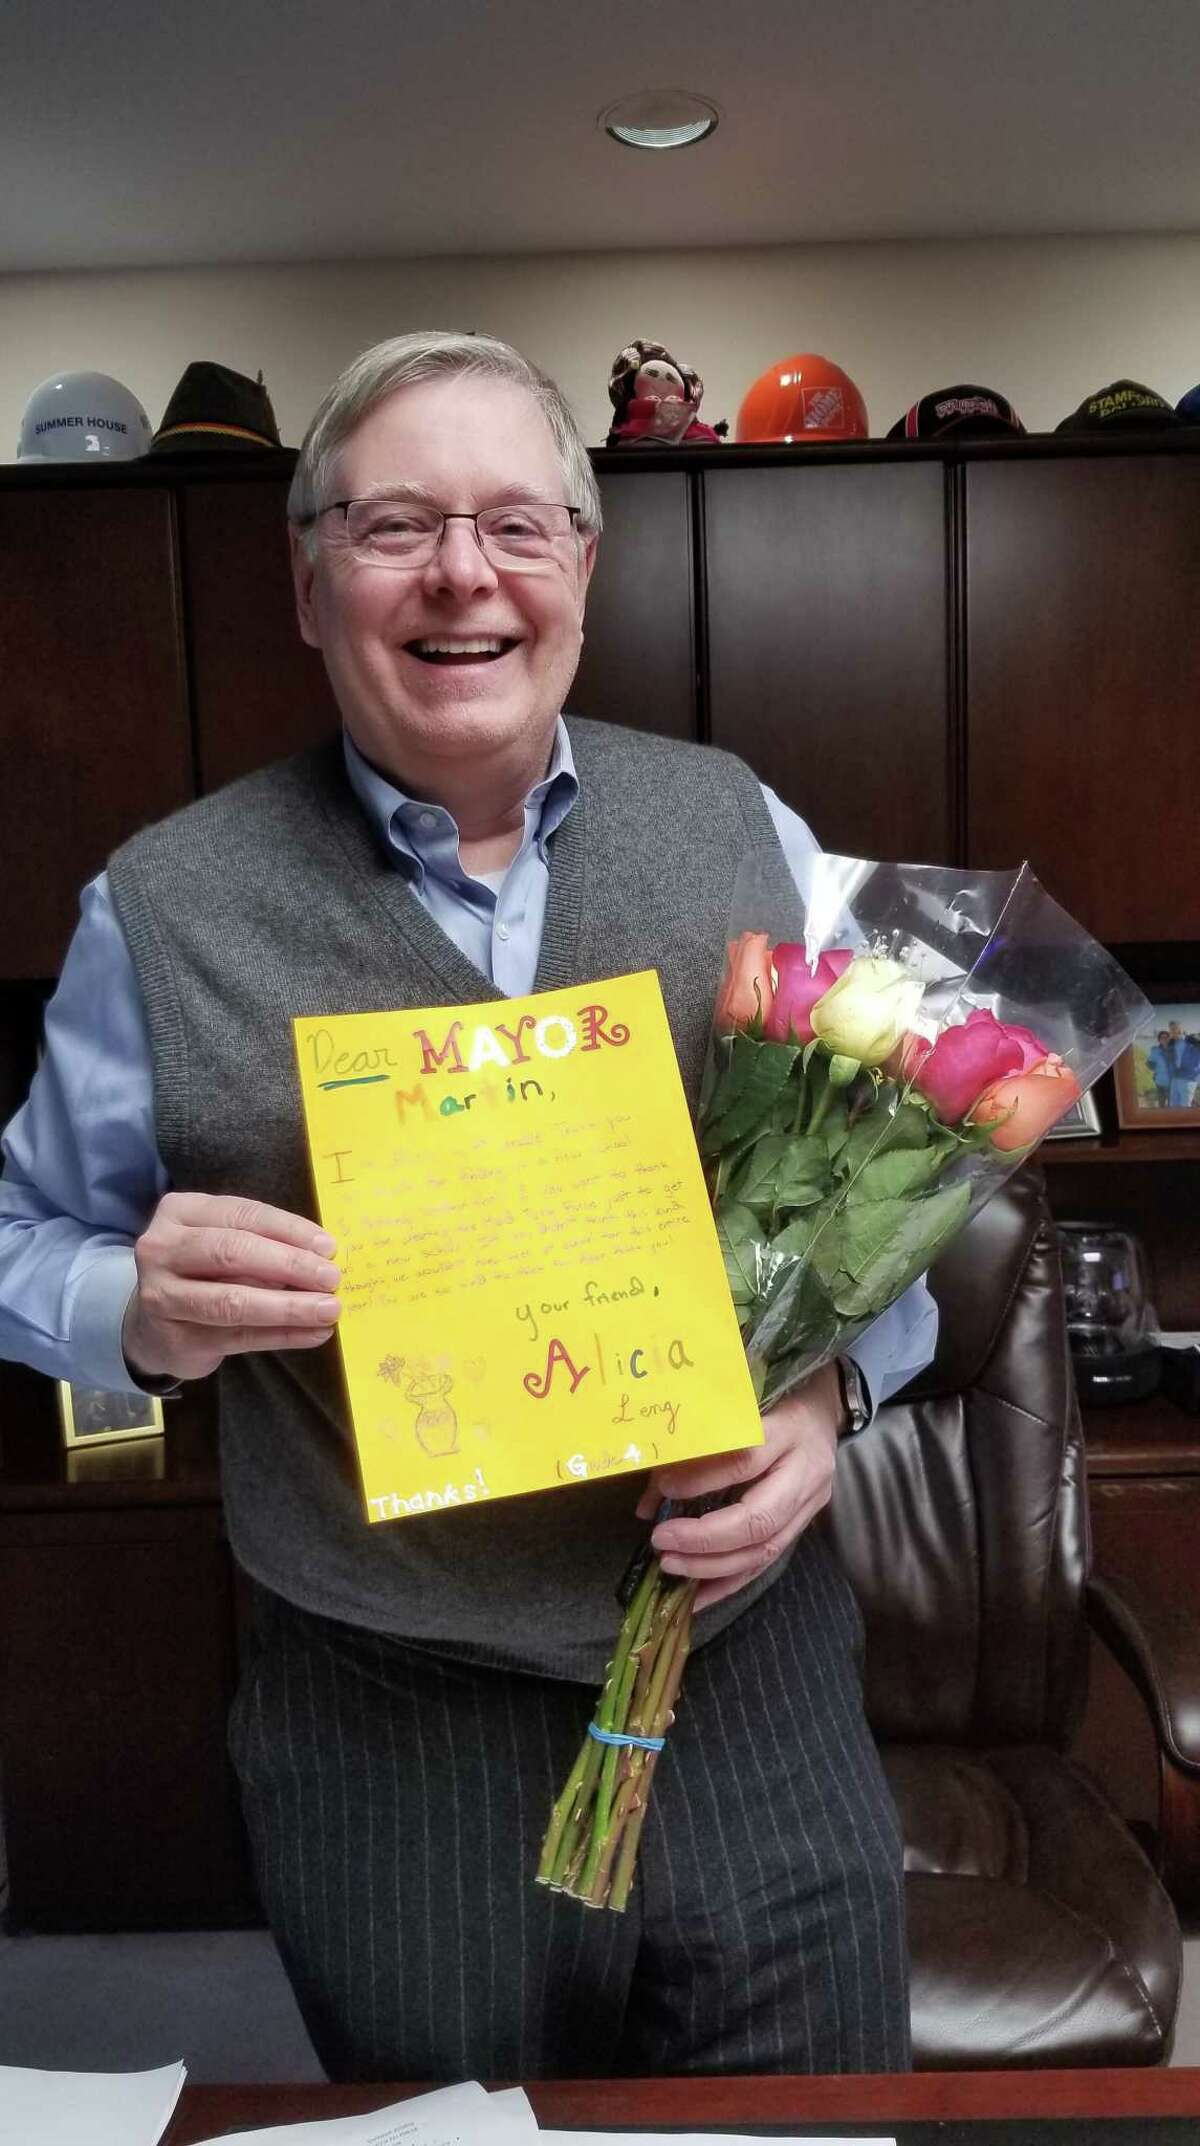 Mayor David Martin of Stamford, Conn. poses with a thank you note and tokens of appreciation from Westover Magnet Elementary School students. Westover students thanked public officials at a Board of Education meeting on Jan. 29, 2019 for moving their school after their old building was closed due to mold.